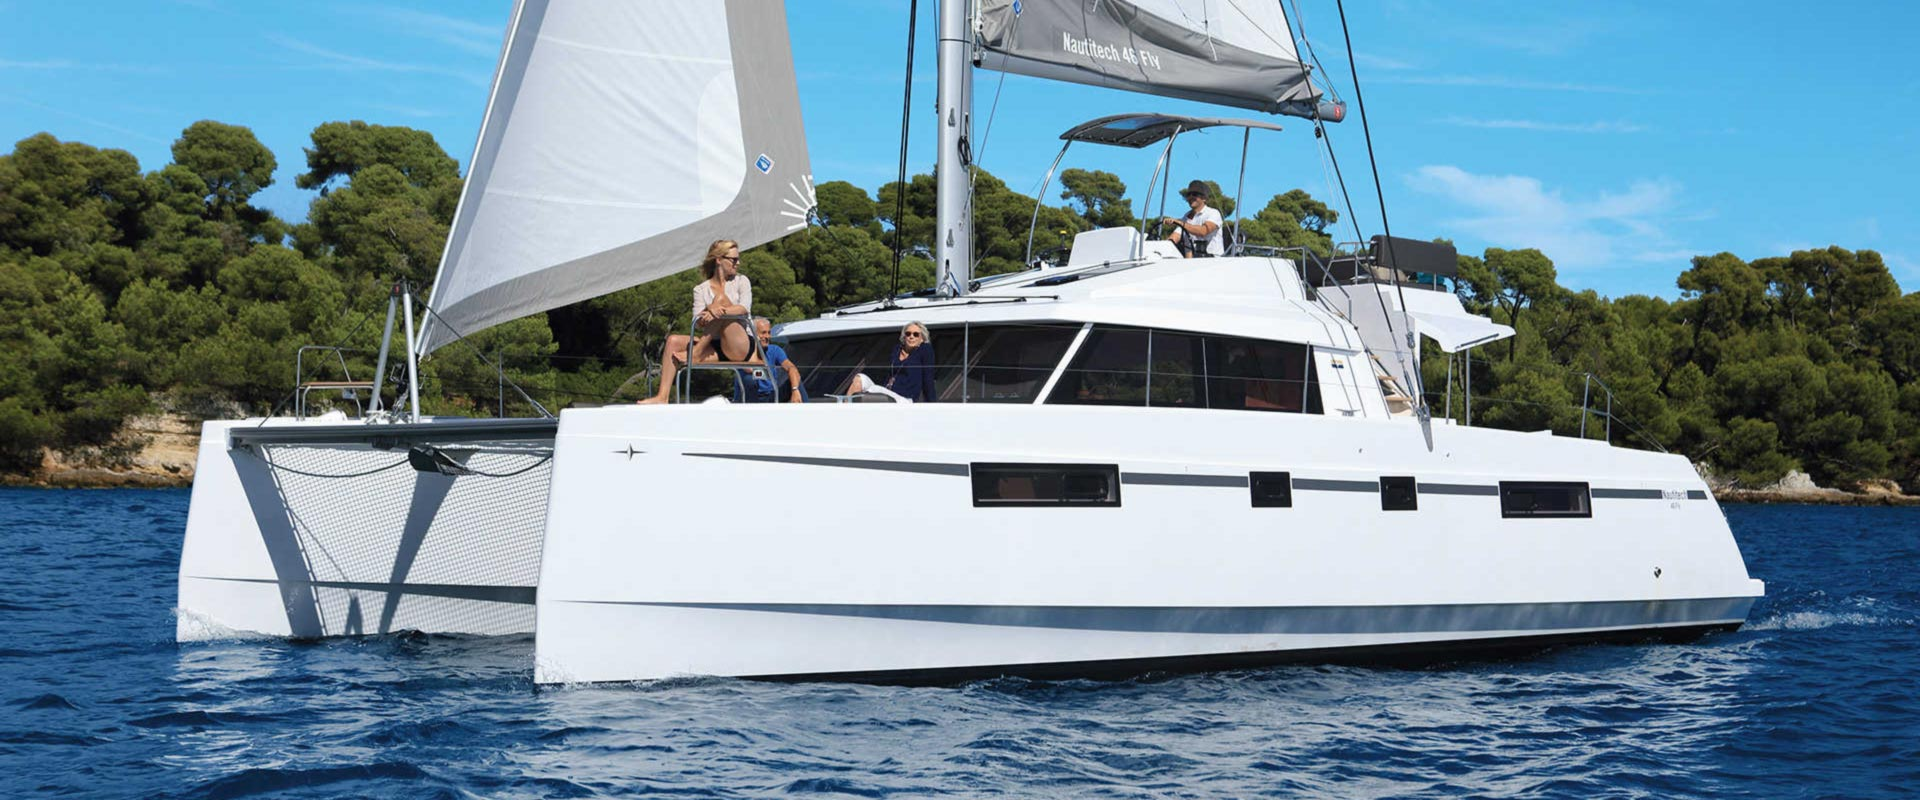 Bavaria Nautitech 46 Fly Catamaran